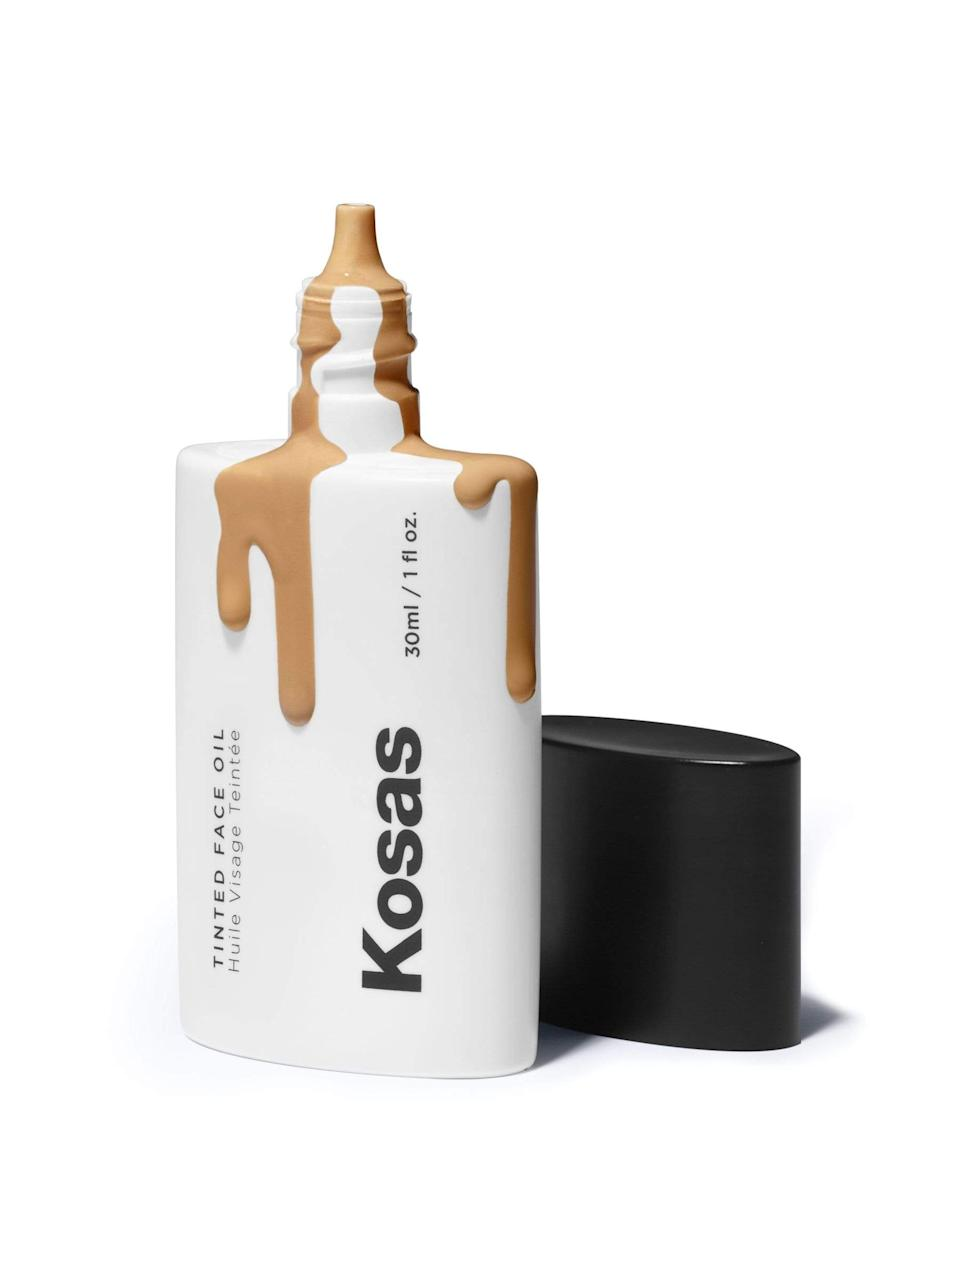 "<h3>Tinted Face Oil</h3><br>Cheekily dubbed as the ""sweatpants of foundation,"" this skin care-makeup hybrid is packed with a blend of plant oils to hydrate and lend a natural glow, while buildable pigments blur and even your complexion.<br><br><strong>Kosas</strong> Tinted Face Oil, $, available at <a href=""https://go.skimresources.com/?id=30283X879131&url=https%3A%2F%2Fkosas.com%2Fproducts%2Ftinted-face-oil-foundation-tone-5-5"" rel=""nofollow noopener"" target=""_blank"" data-ylk=""slk:Kosas"" class=""link rapid-noclick-resp"">Kosas</a>"